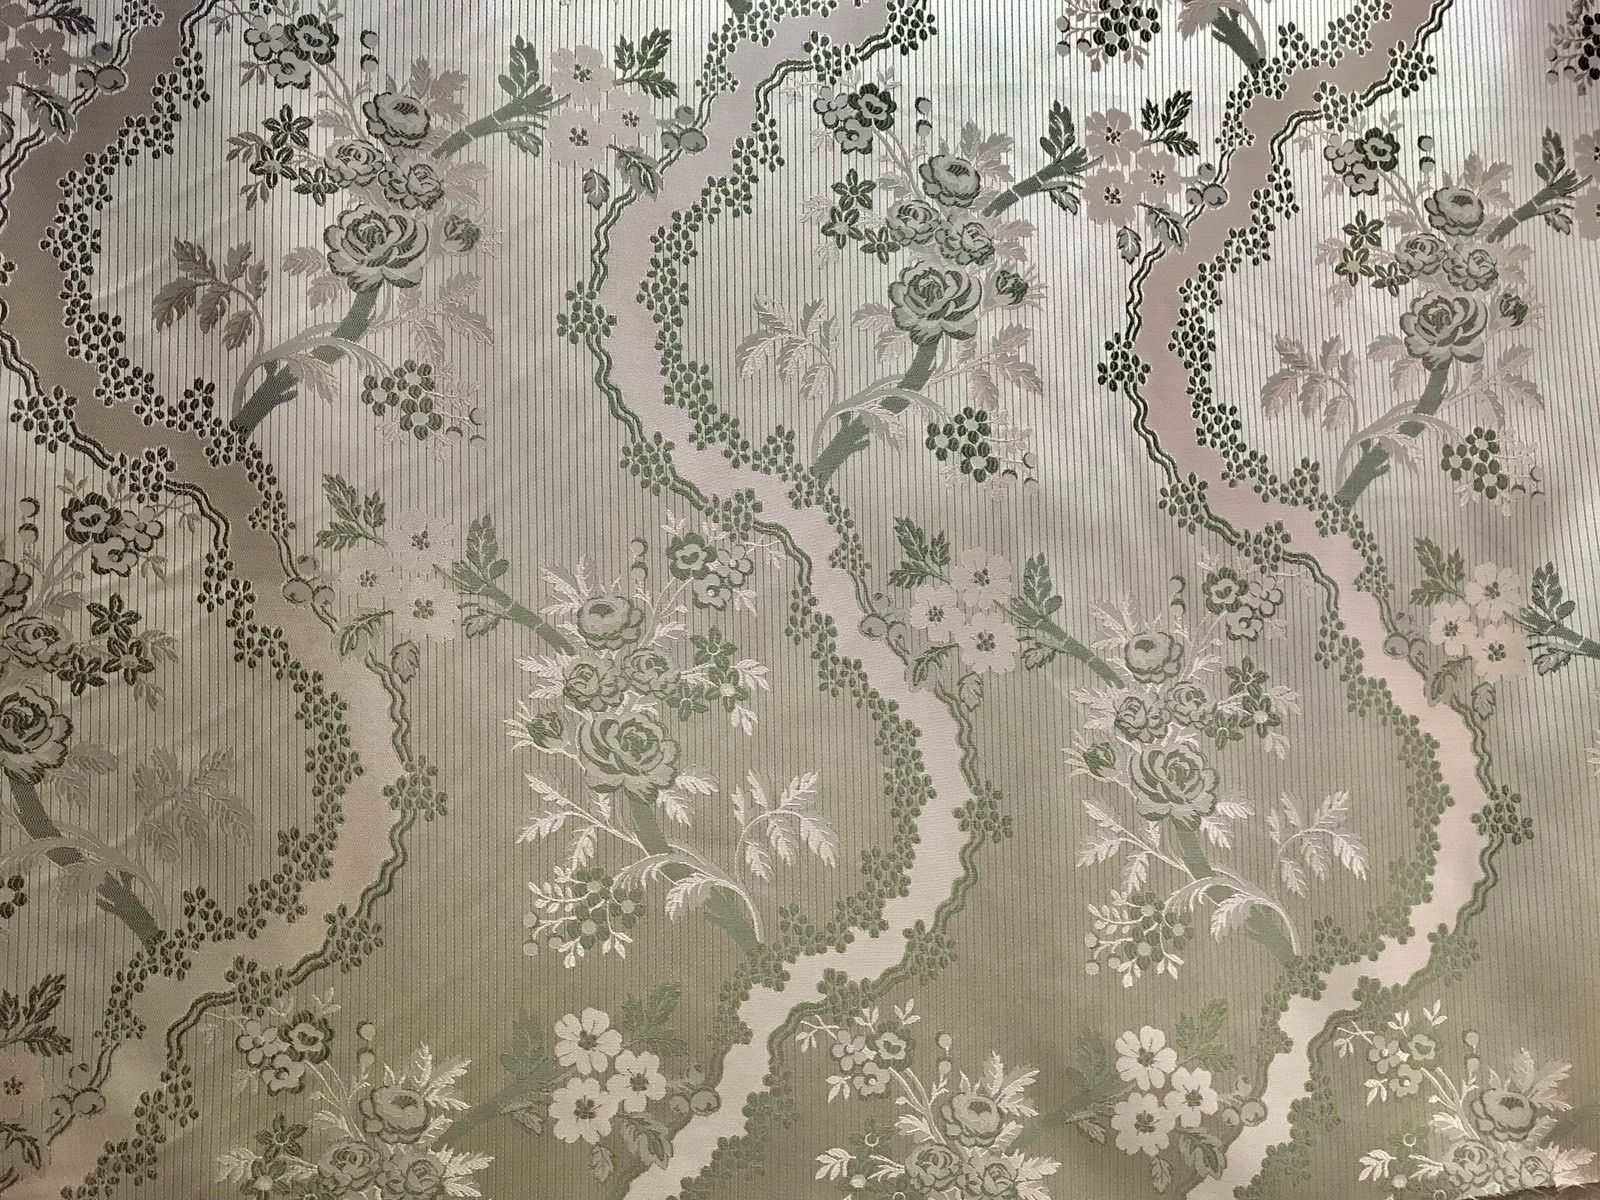 SWATCH Designer Brocade Satin Fabric- Mint Green Pink Floral - Damask - Fancy Styles Fabric Boutique